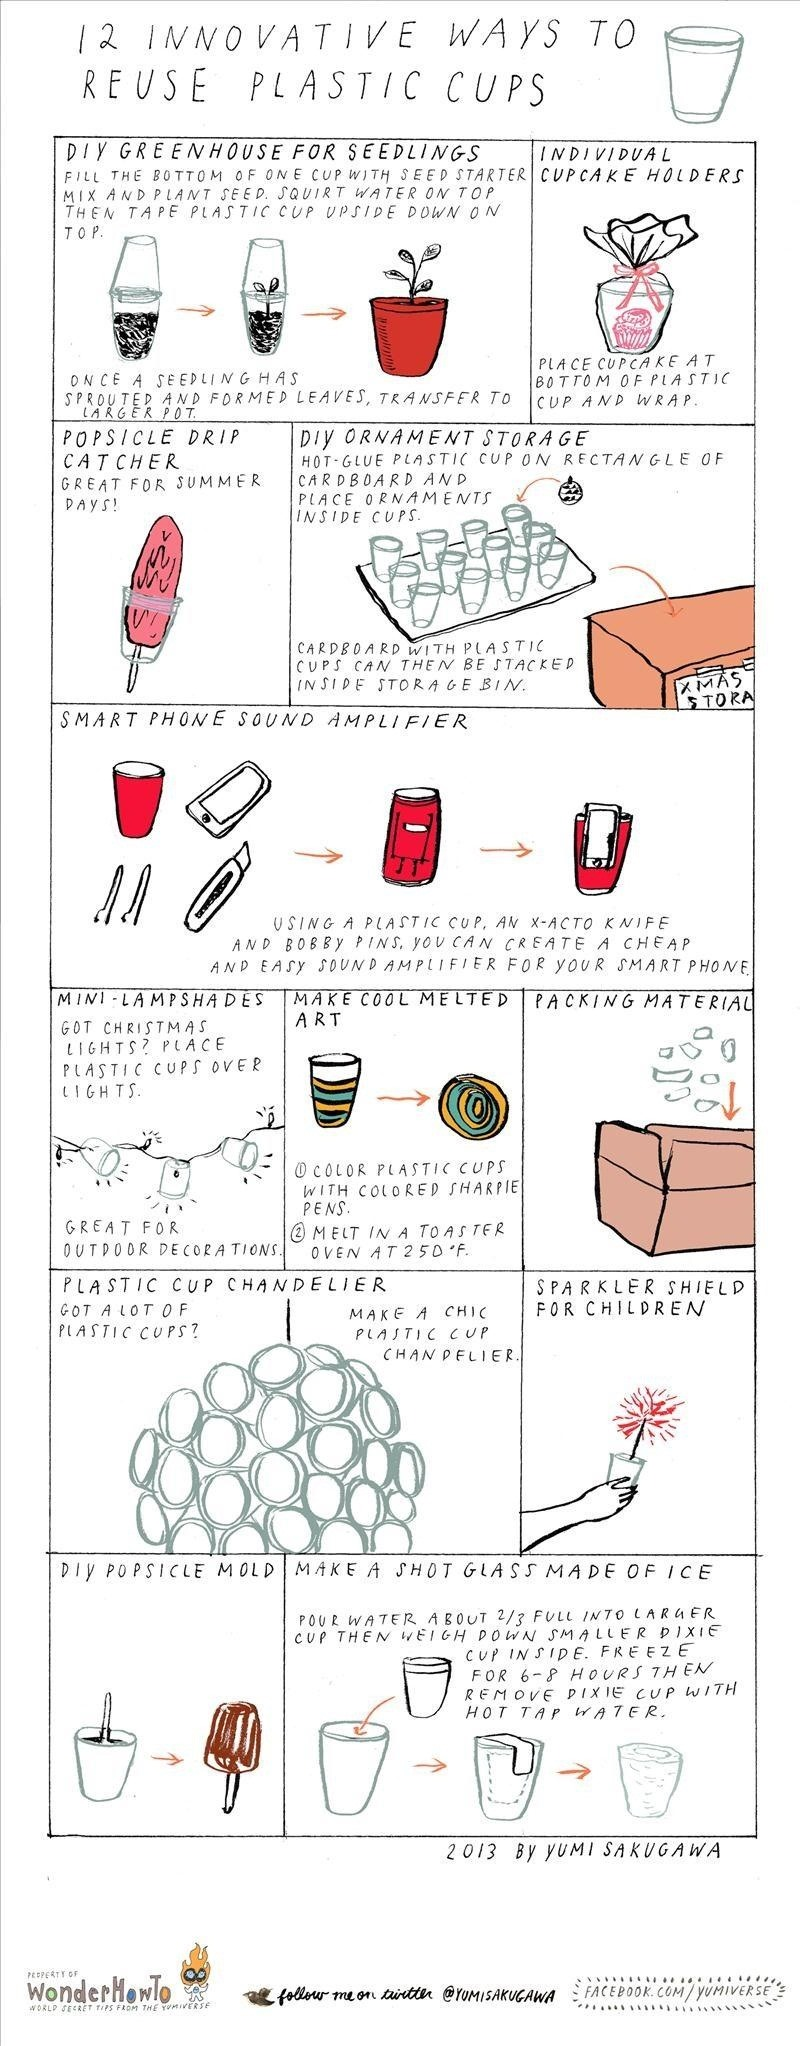 12 Innovative Ways to Reuse Plastic Cups